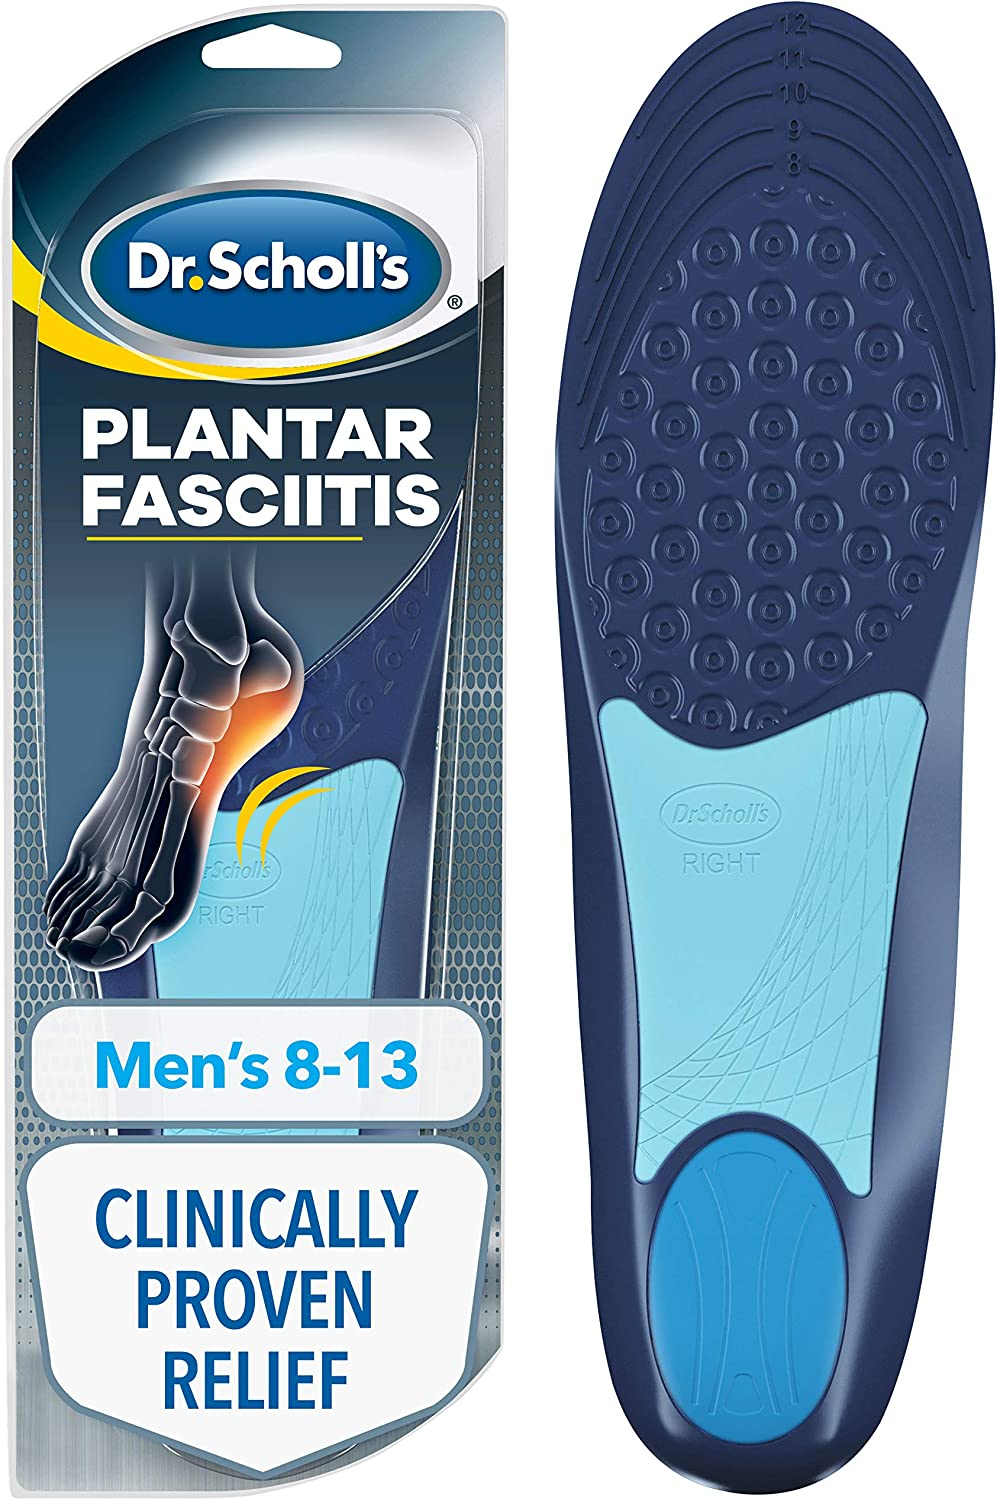 5 Special Insoles to Relieve Plantar Fasciitis Pain